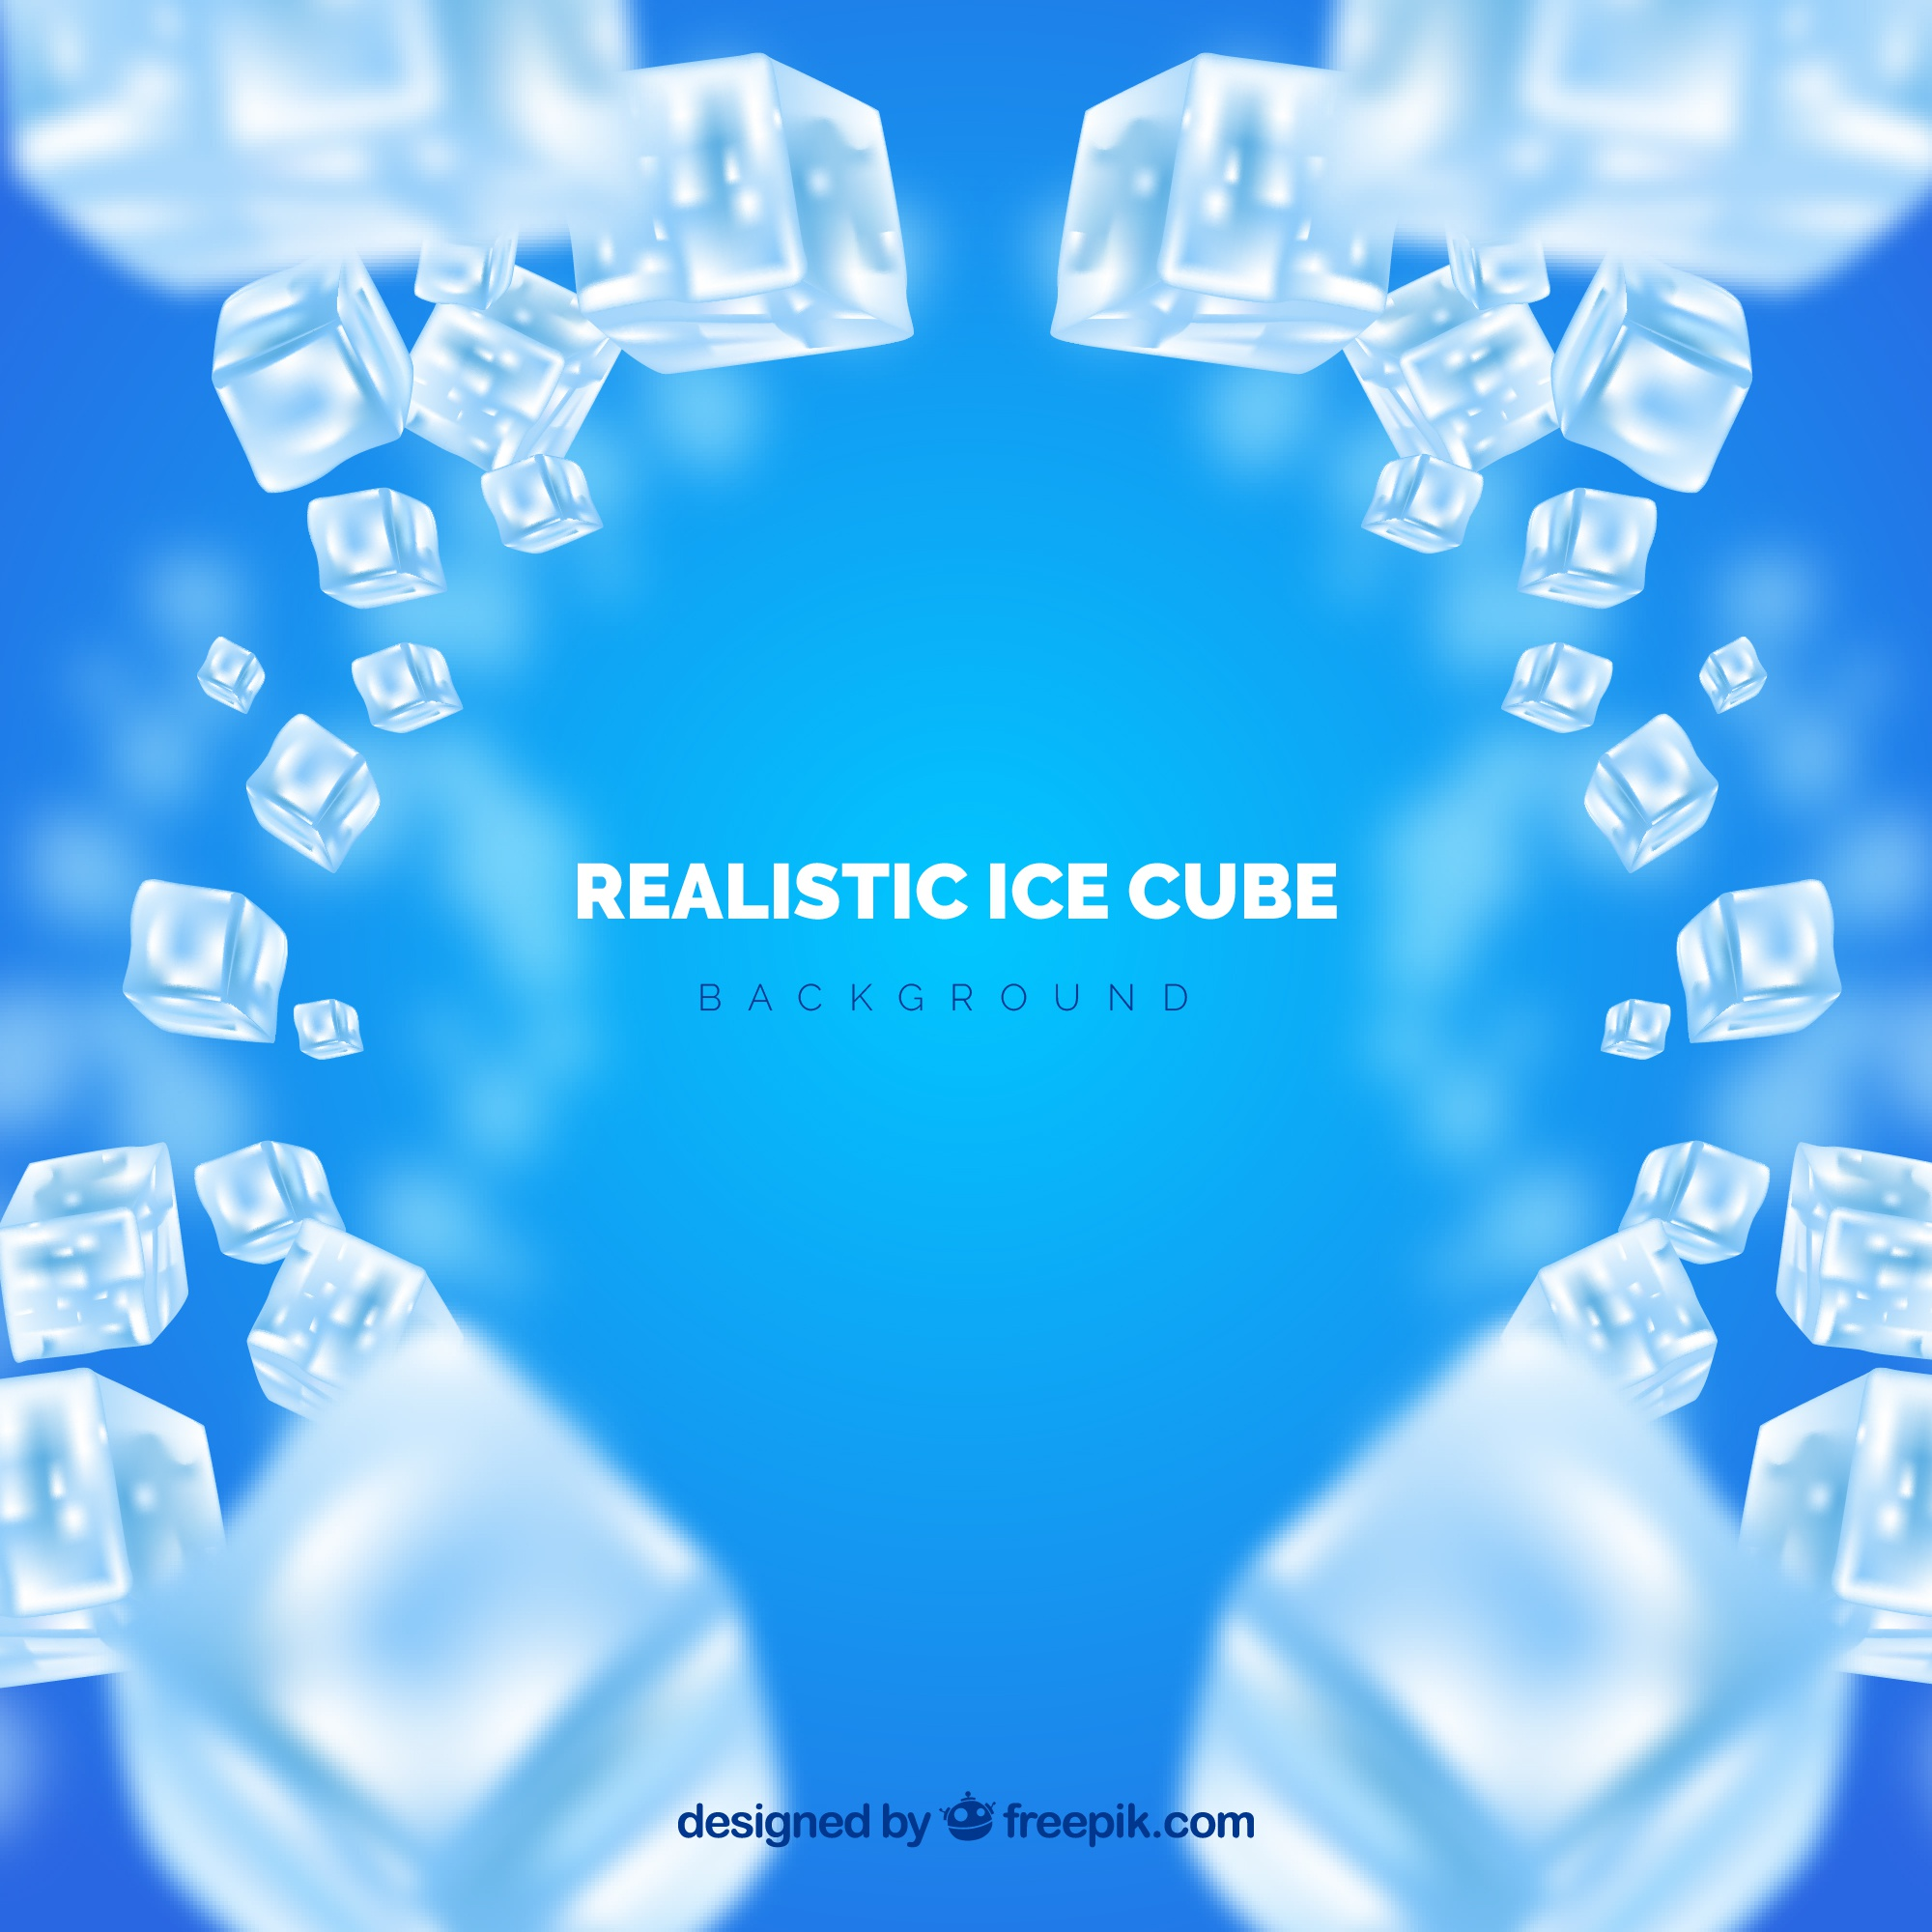 Ice cube background in realistic style